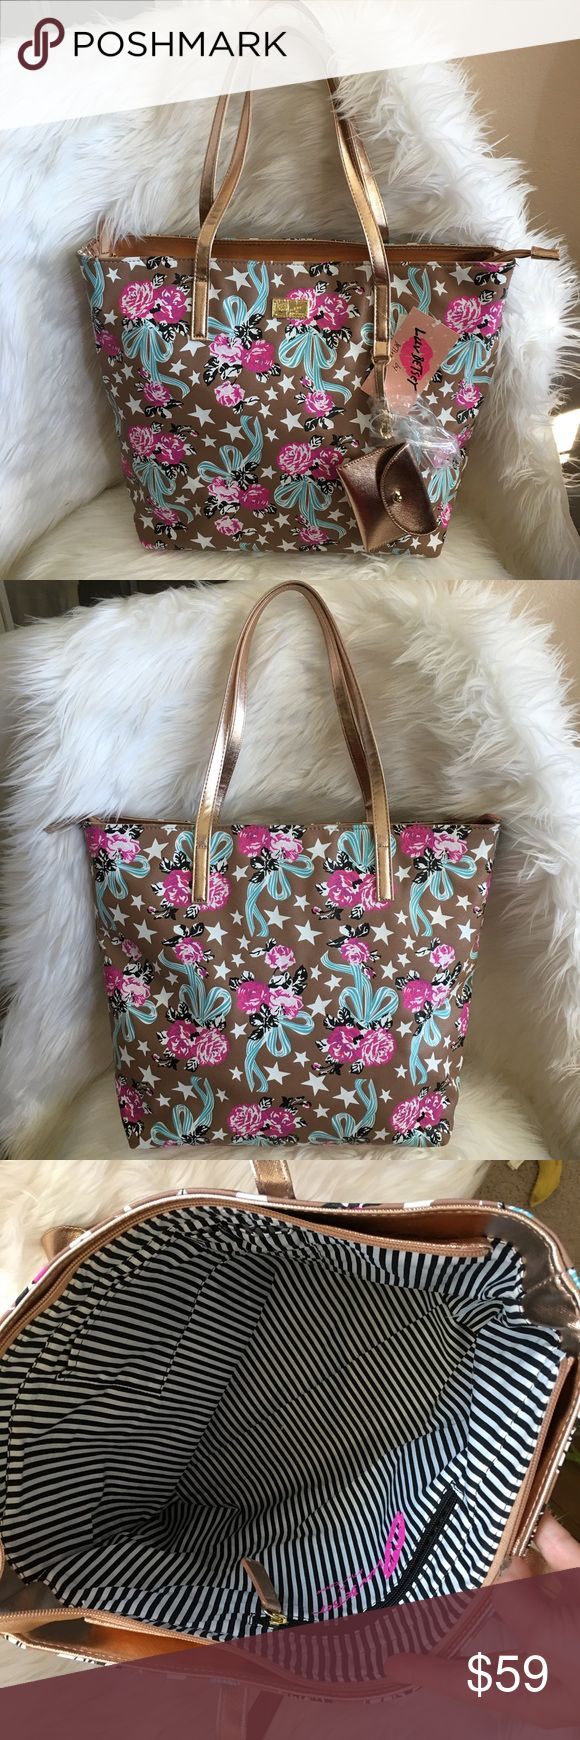 """Betsey large tote satchel bag Rose Gold pink bow Betsey Johnson large tote satchel NWT  Gorgeous shoulder handle Rose Gold trim Color is taupe beige pink turquoise  Pattern with roses bows and stars on vegan leather Pretty rose gold pouch with lips detail  Gold enamel logo Handles have 10"""" drop Inside is lined with striped fabric  17x13x5 Msrp $78.00  🌸 Posh Ambassador 🌸  #smokefree #betseyjohnson #luvbetsey Betsey Johnson Bags Totes"""